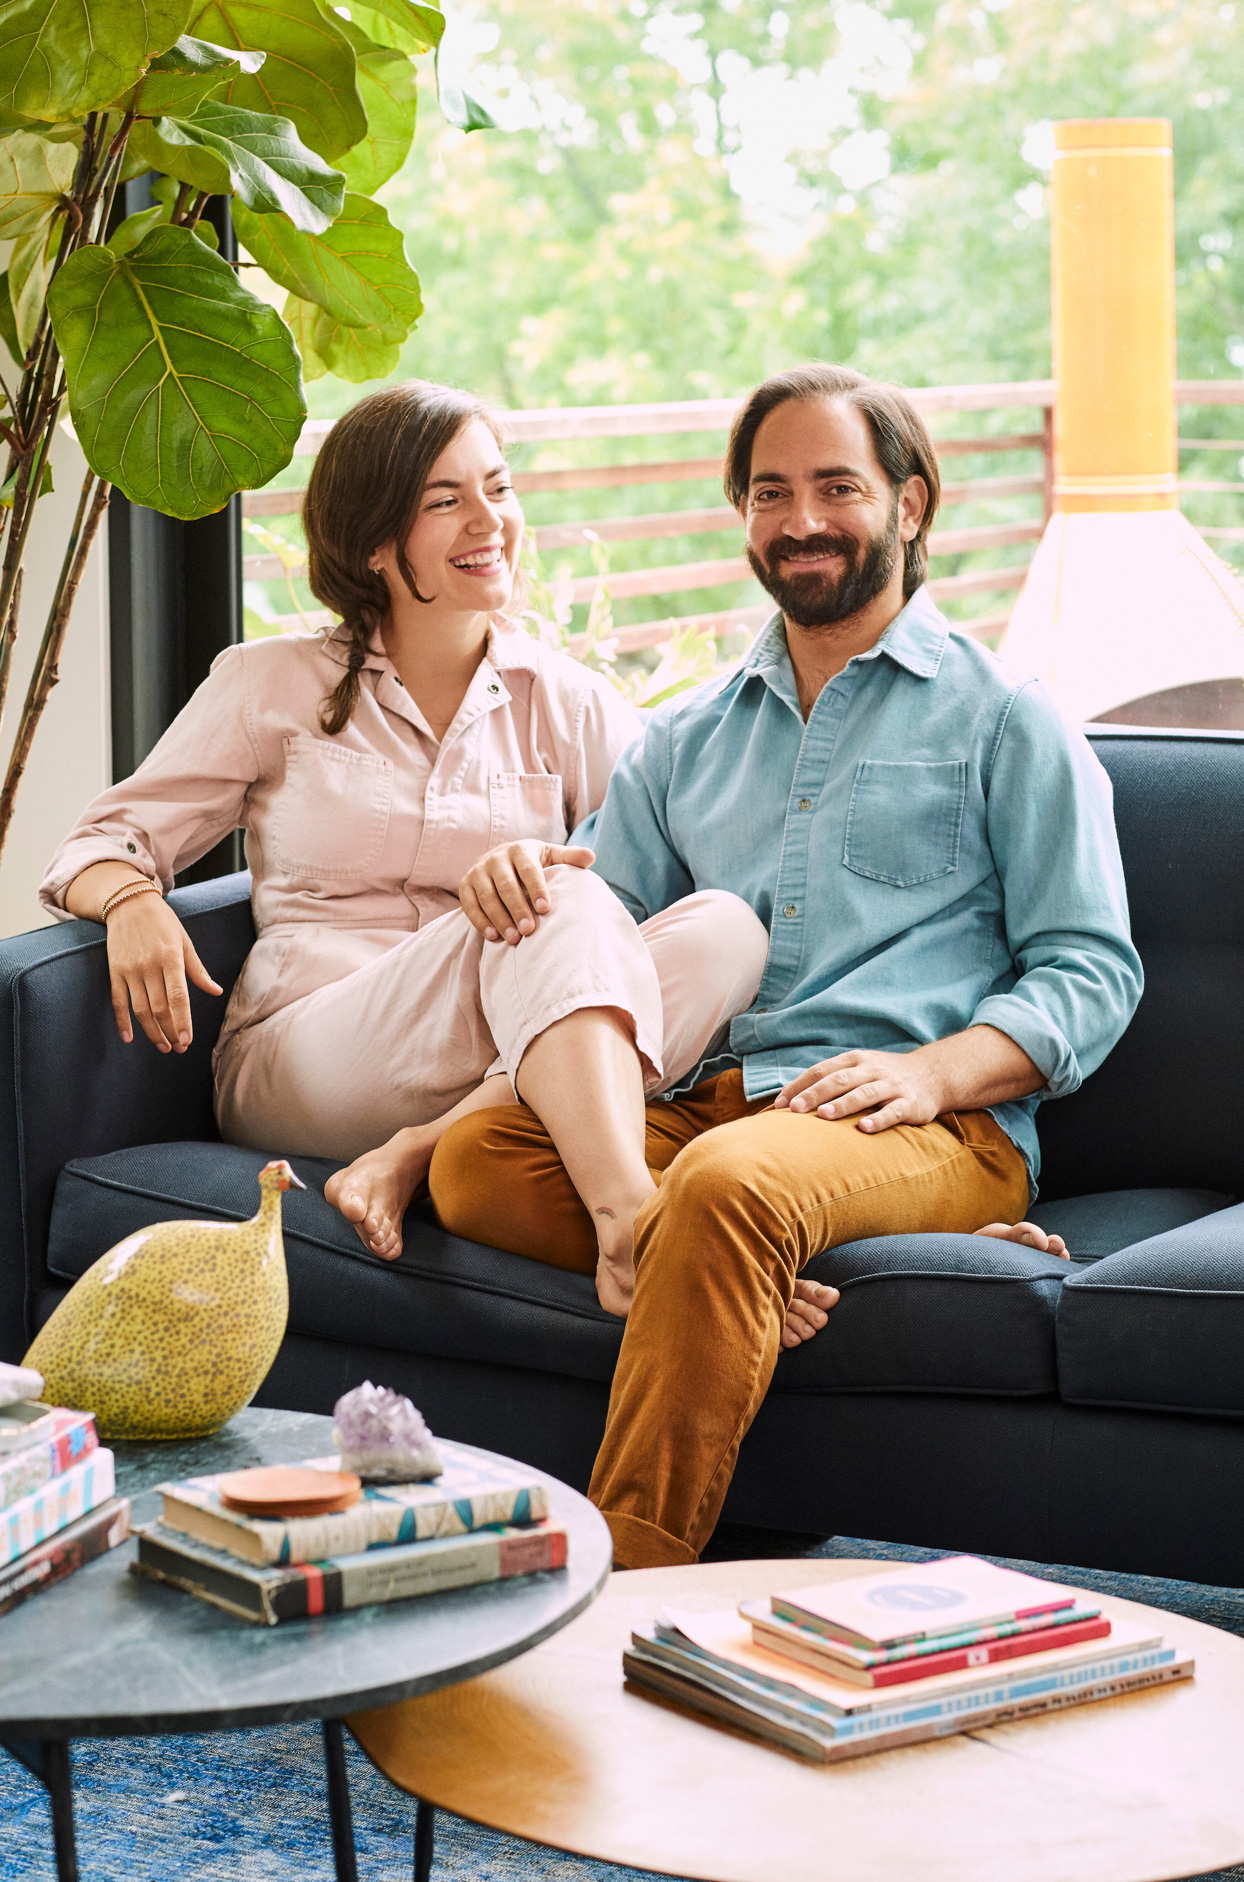 couple sitting together smiling on couch